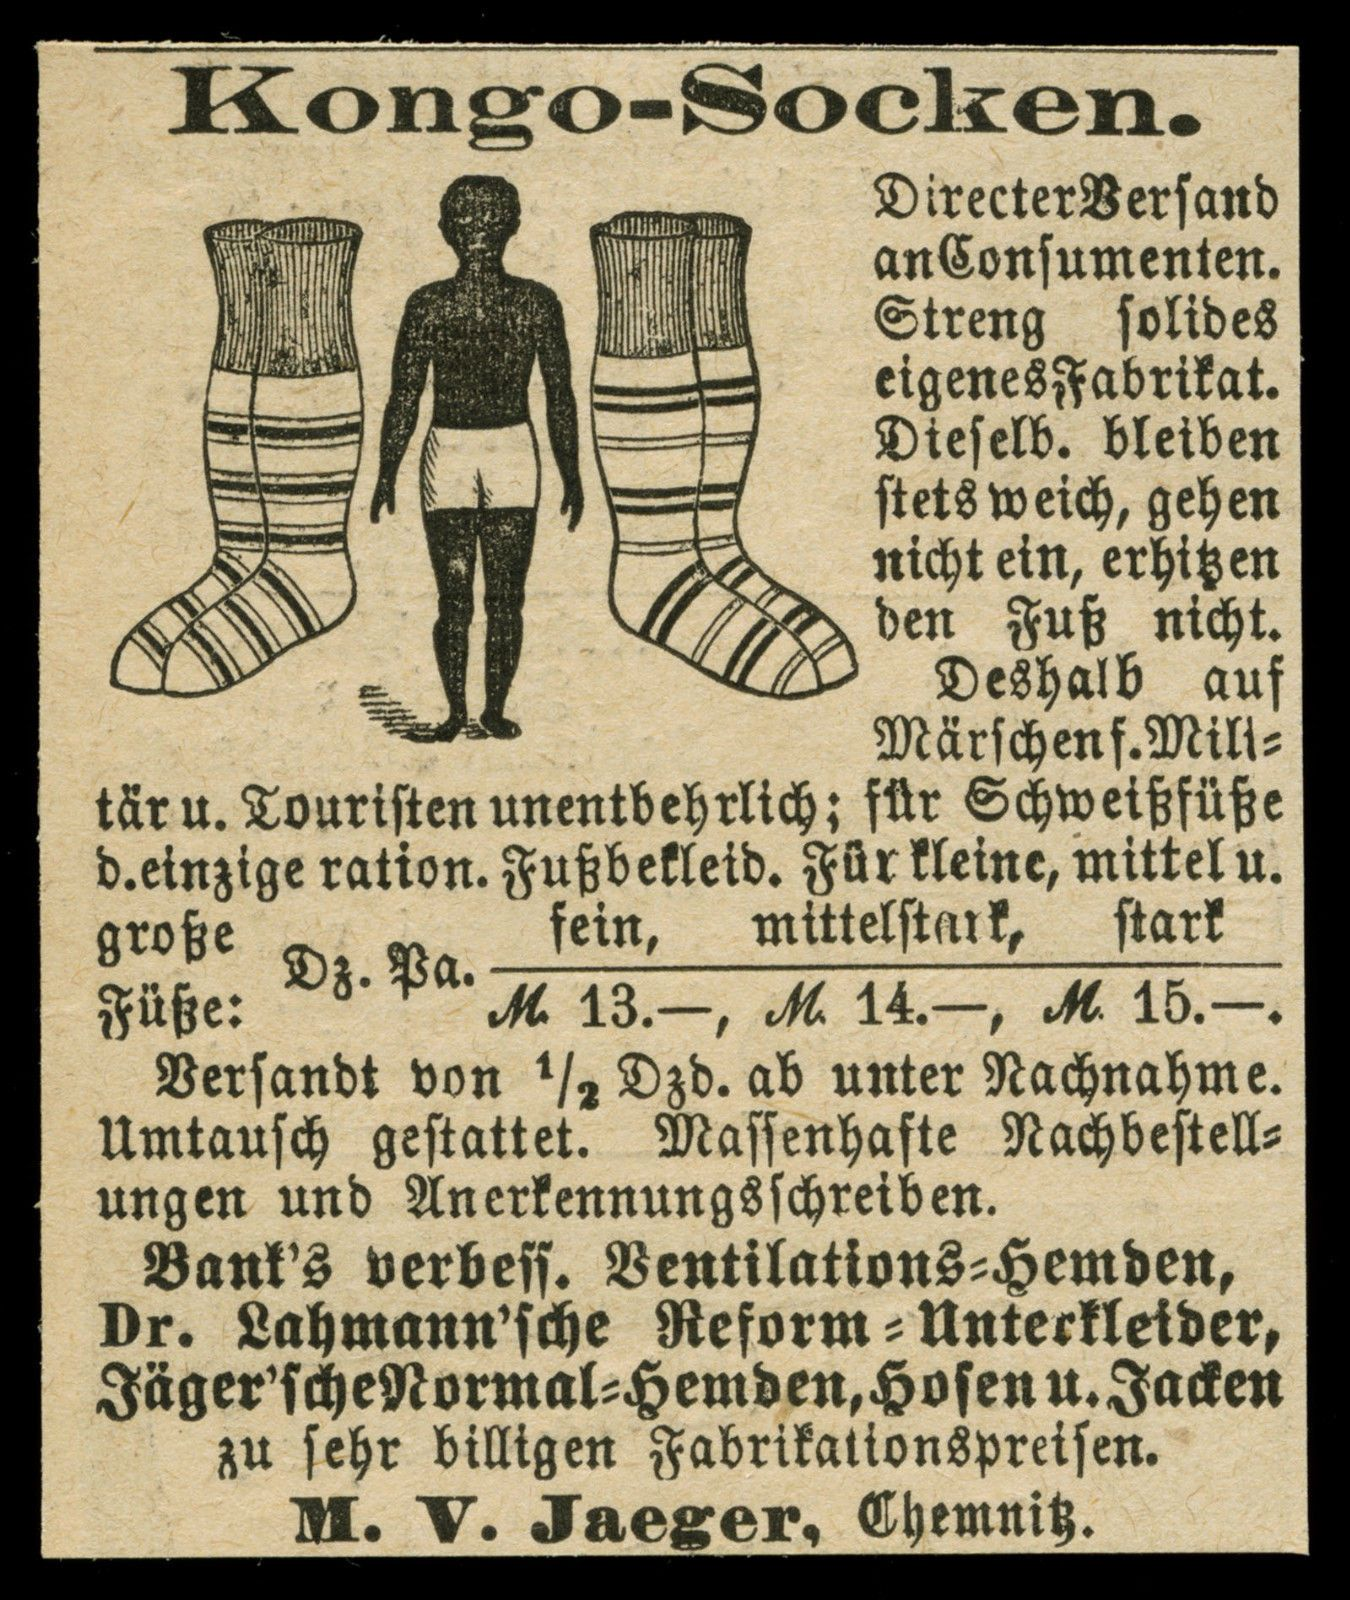 alte reklame werbung 1887 kongo socken m v jaeger chemnitz ebay accessoires viktorianisch. Black Bedroom Furniture Sets. Home Design Ideas